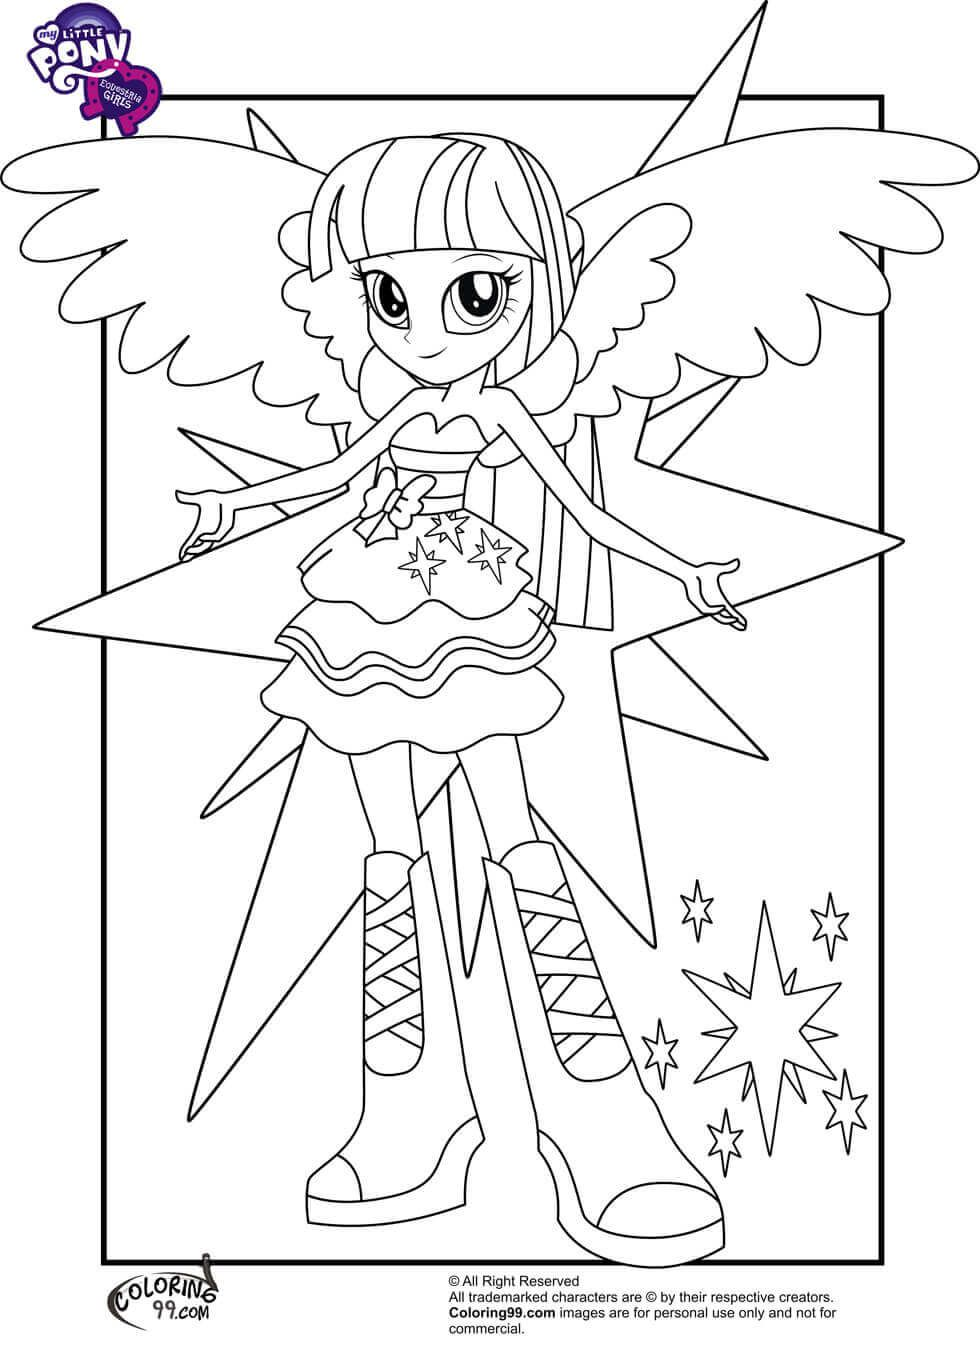 Mlp Pinkie Pie Equestria Girls Coloring Pages Jpg 980 1 482 Pixels